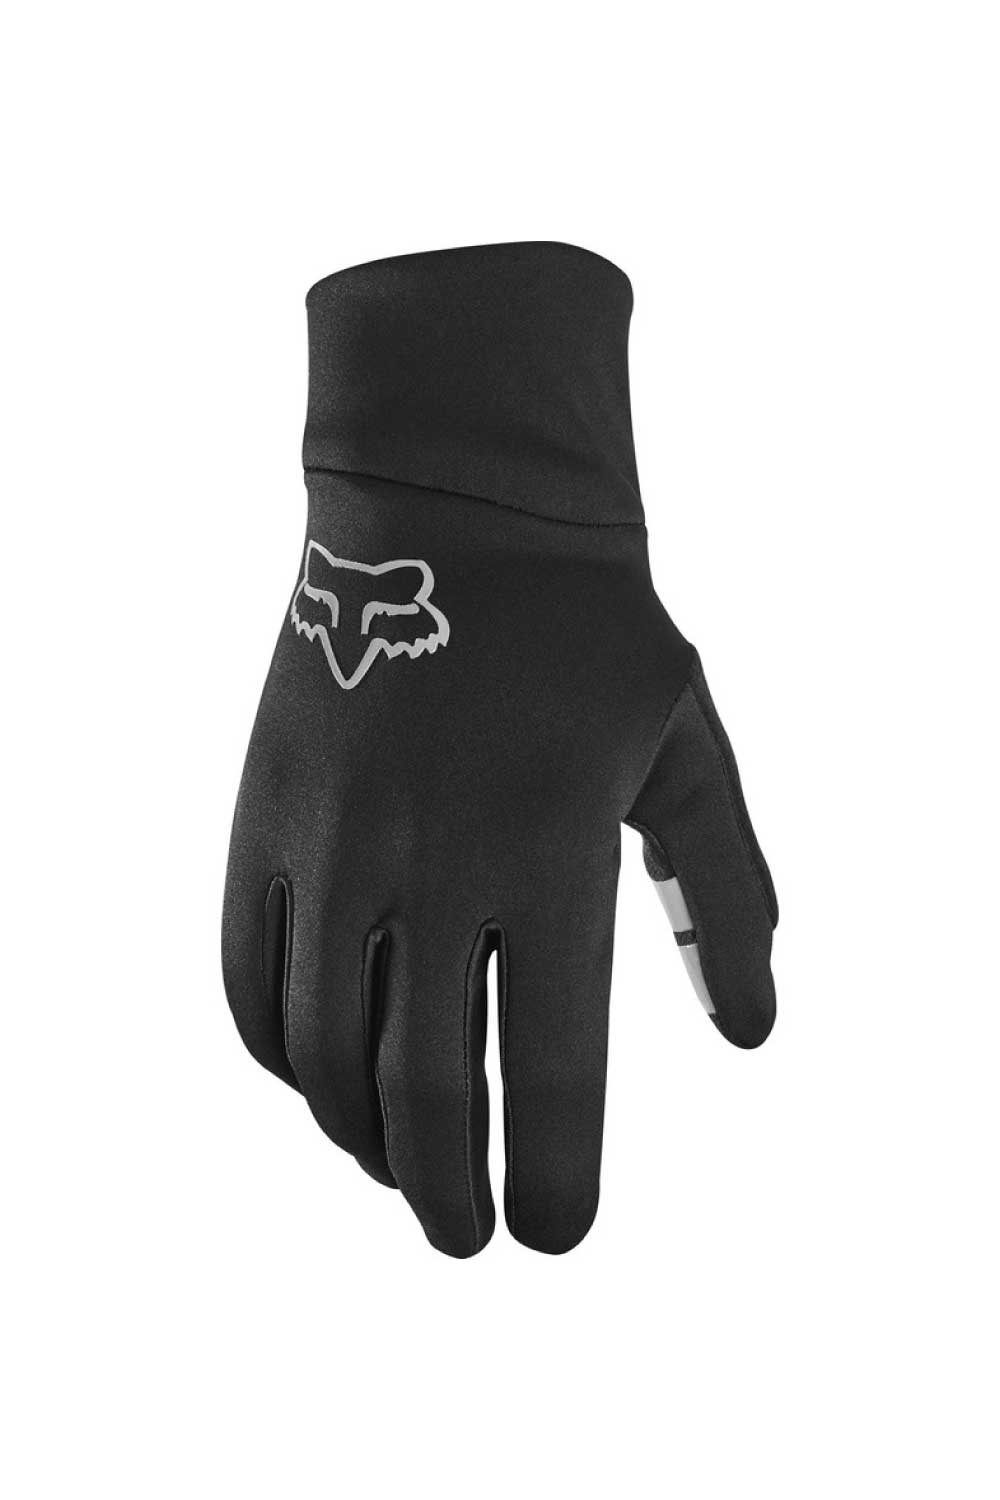 FOX 2020 Ranger Fire Women's MTB Bike Gloves